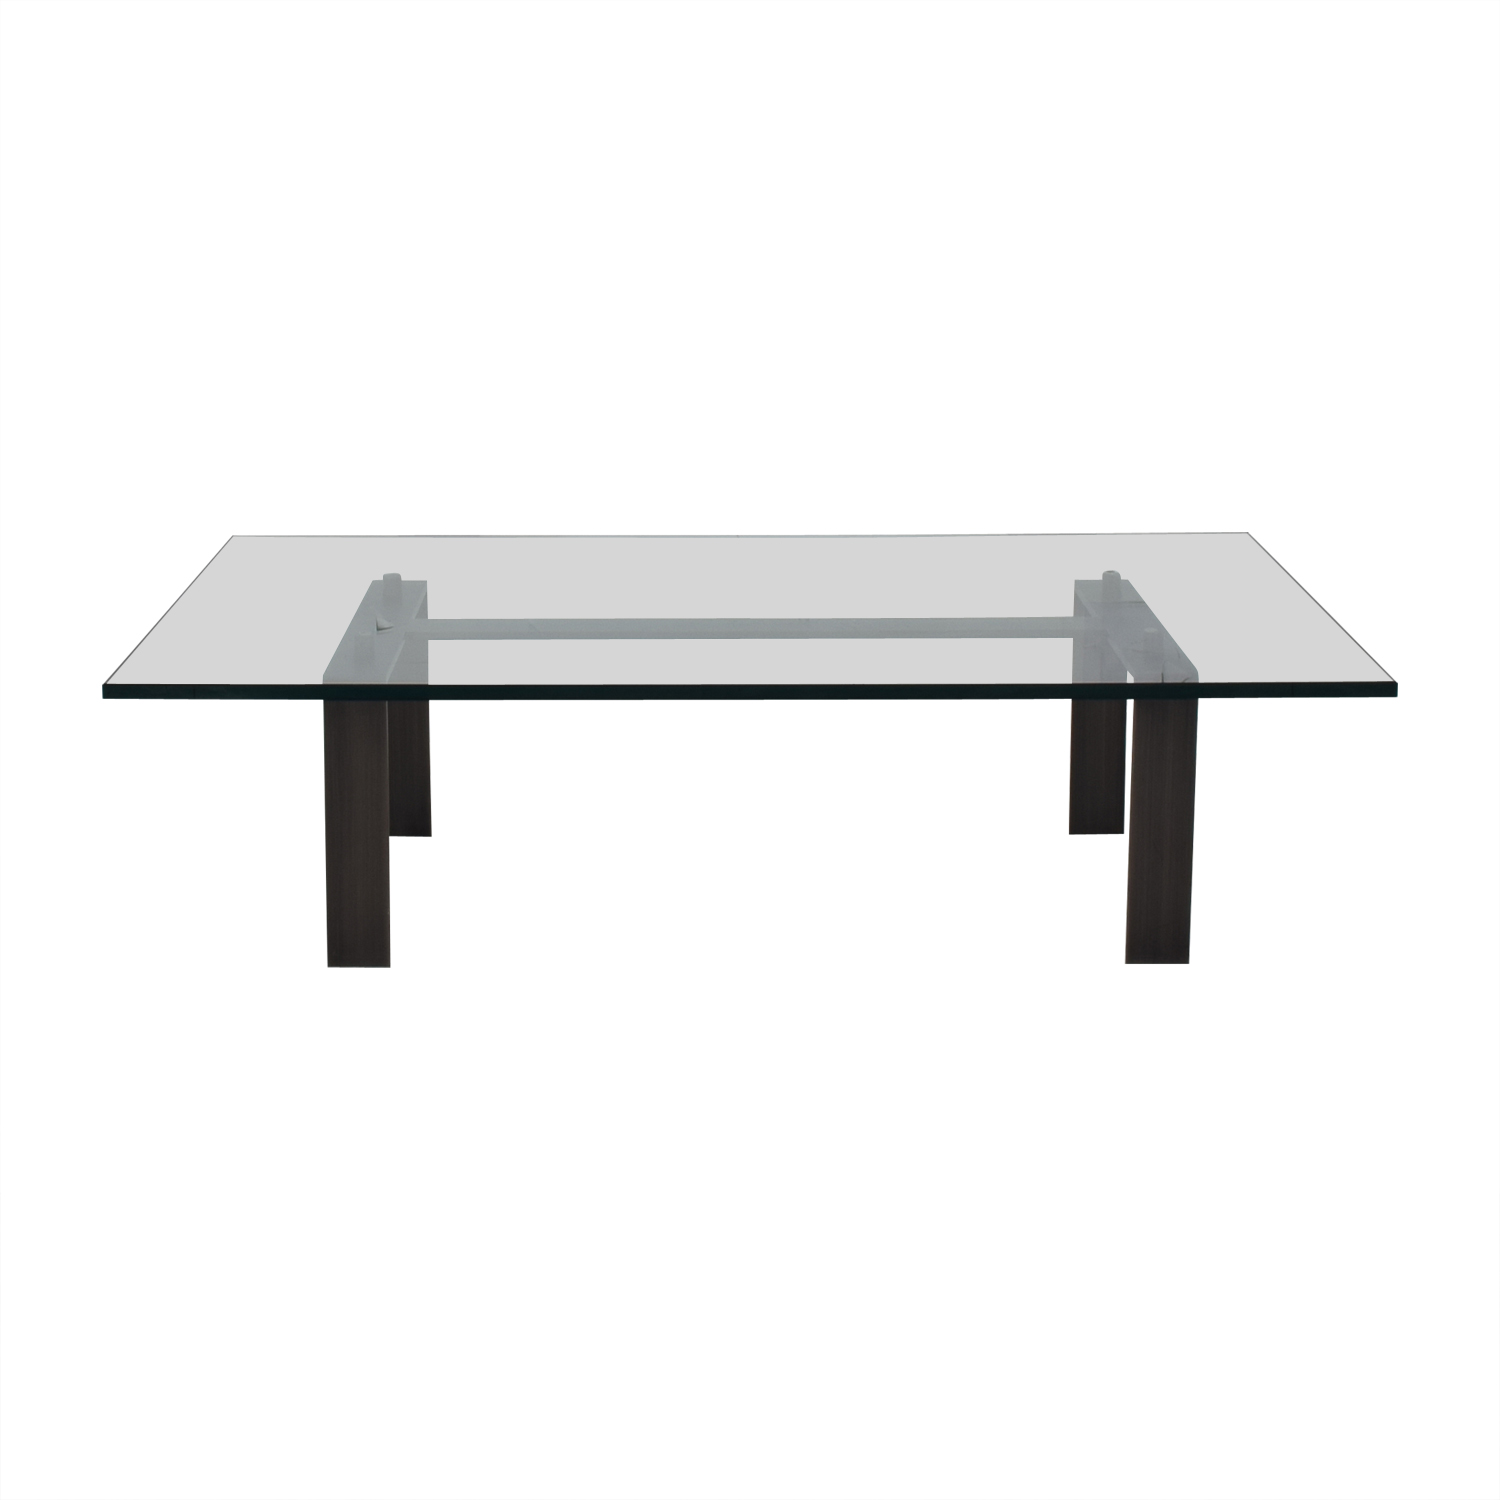 Desiron Desiron Empire Glass Top with Satin Steel Coffee Table price